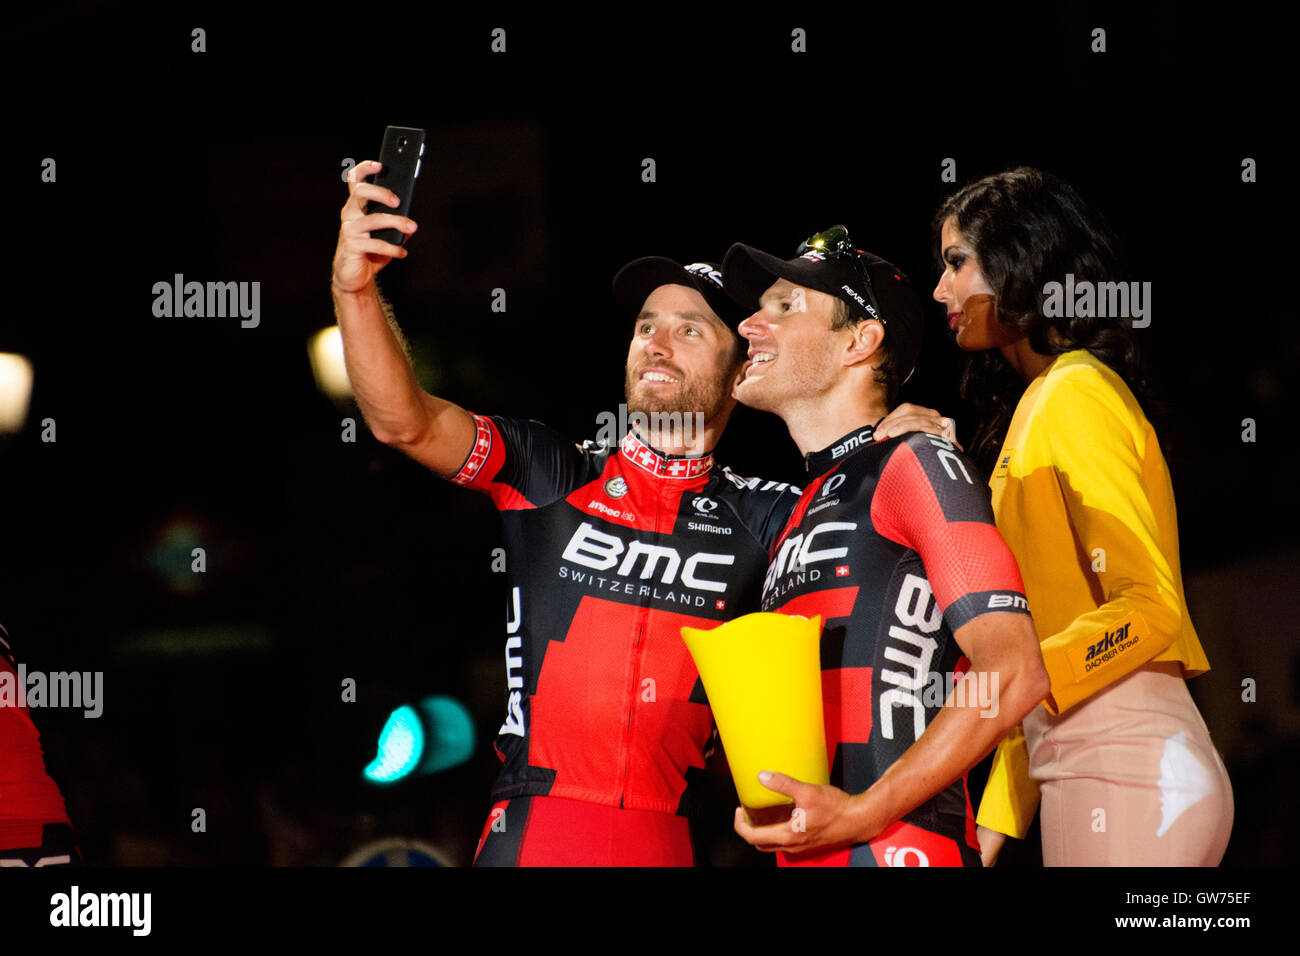 Madrid, Spain. 11th September, 2016. Two cyclists of BMC take a selfie at final podium of 21st stage of cycling - Stock Image